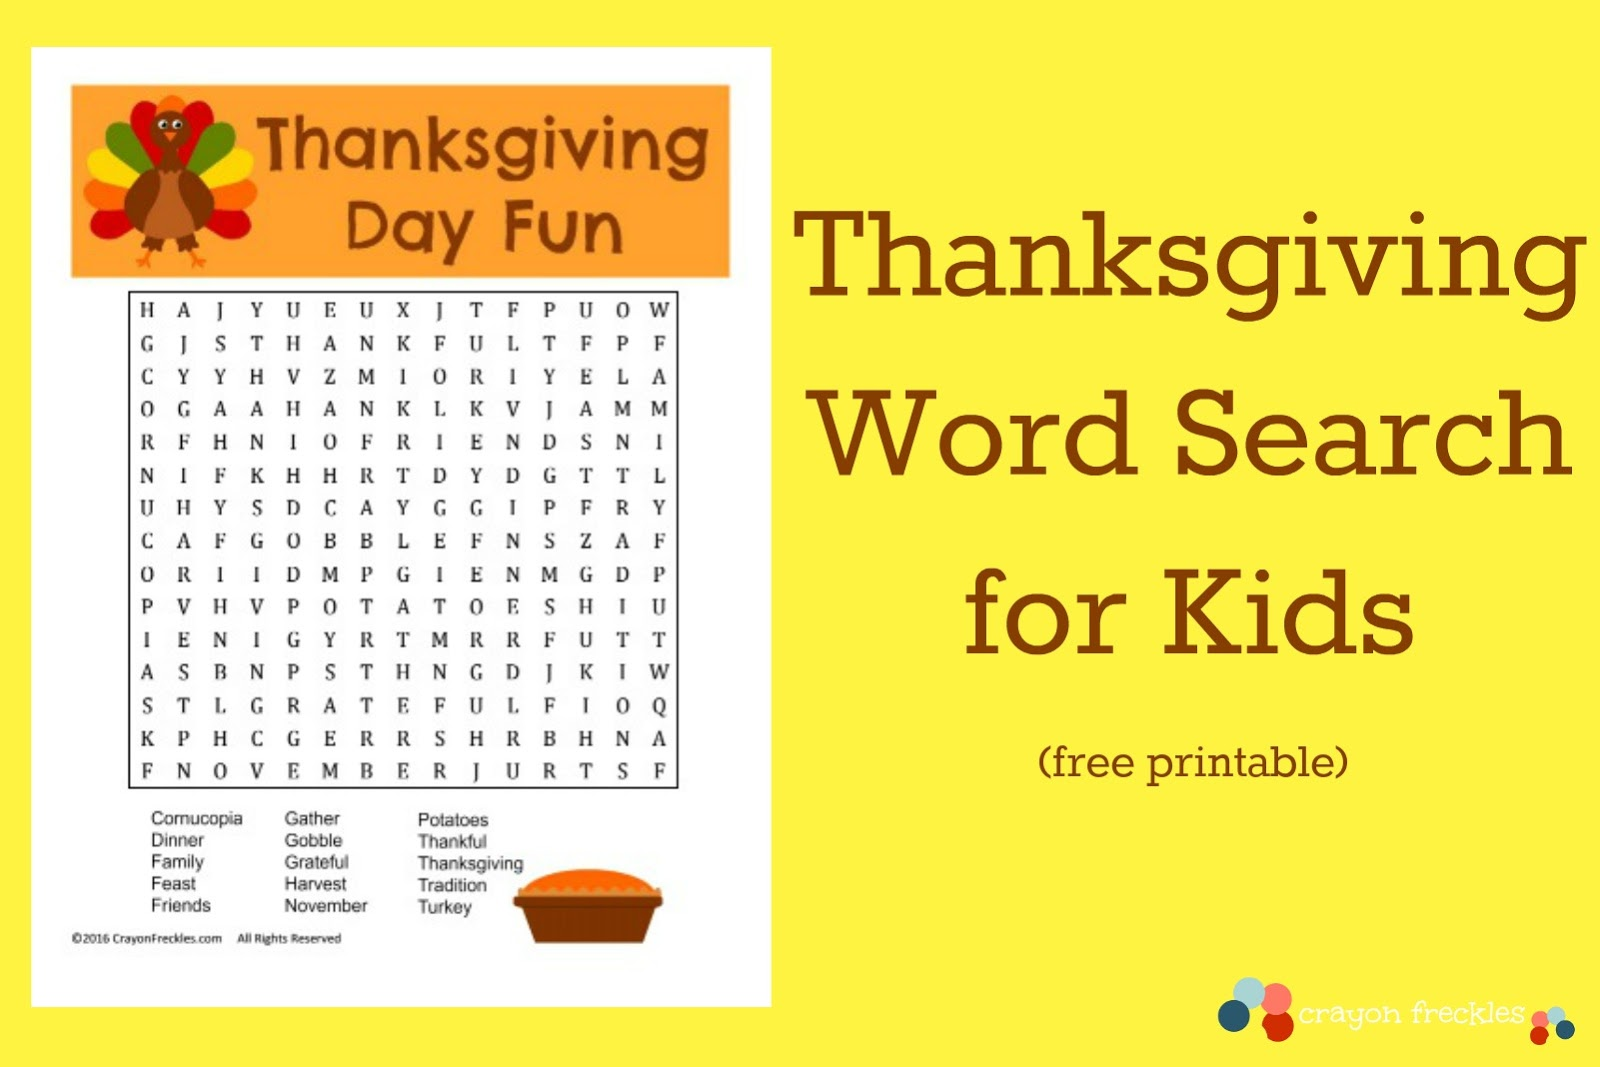 It's just a picture of Printable Thanksgiving Wordsearch pertaining to hard word